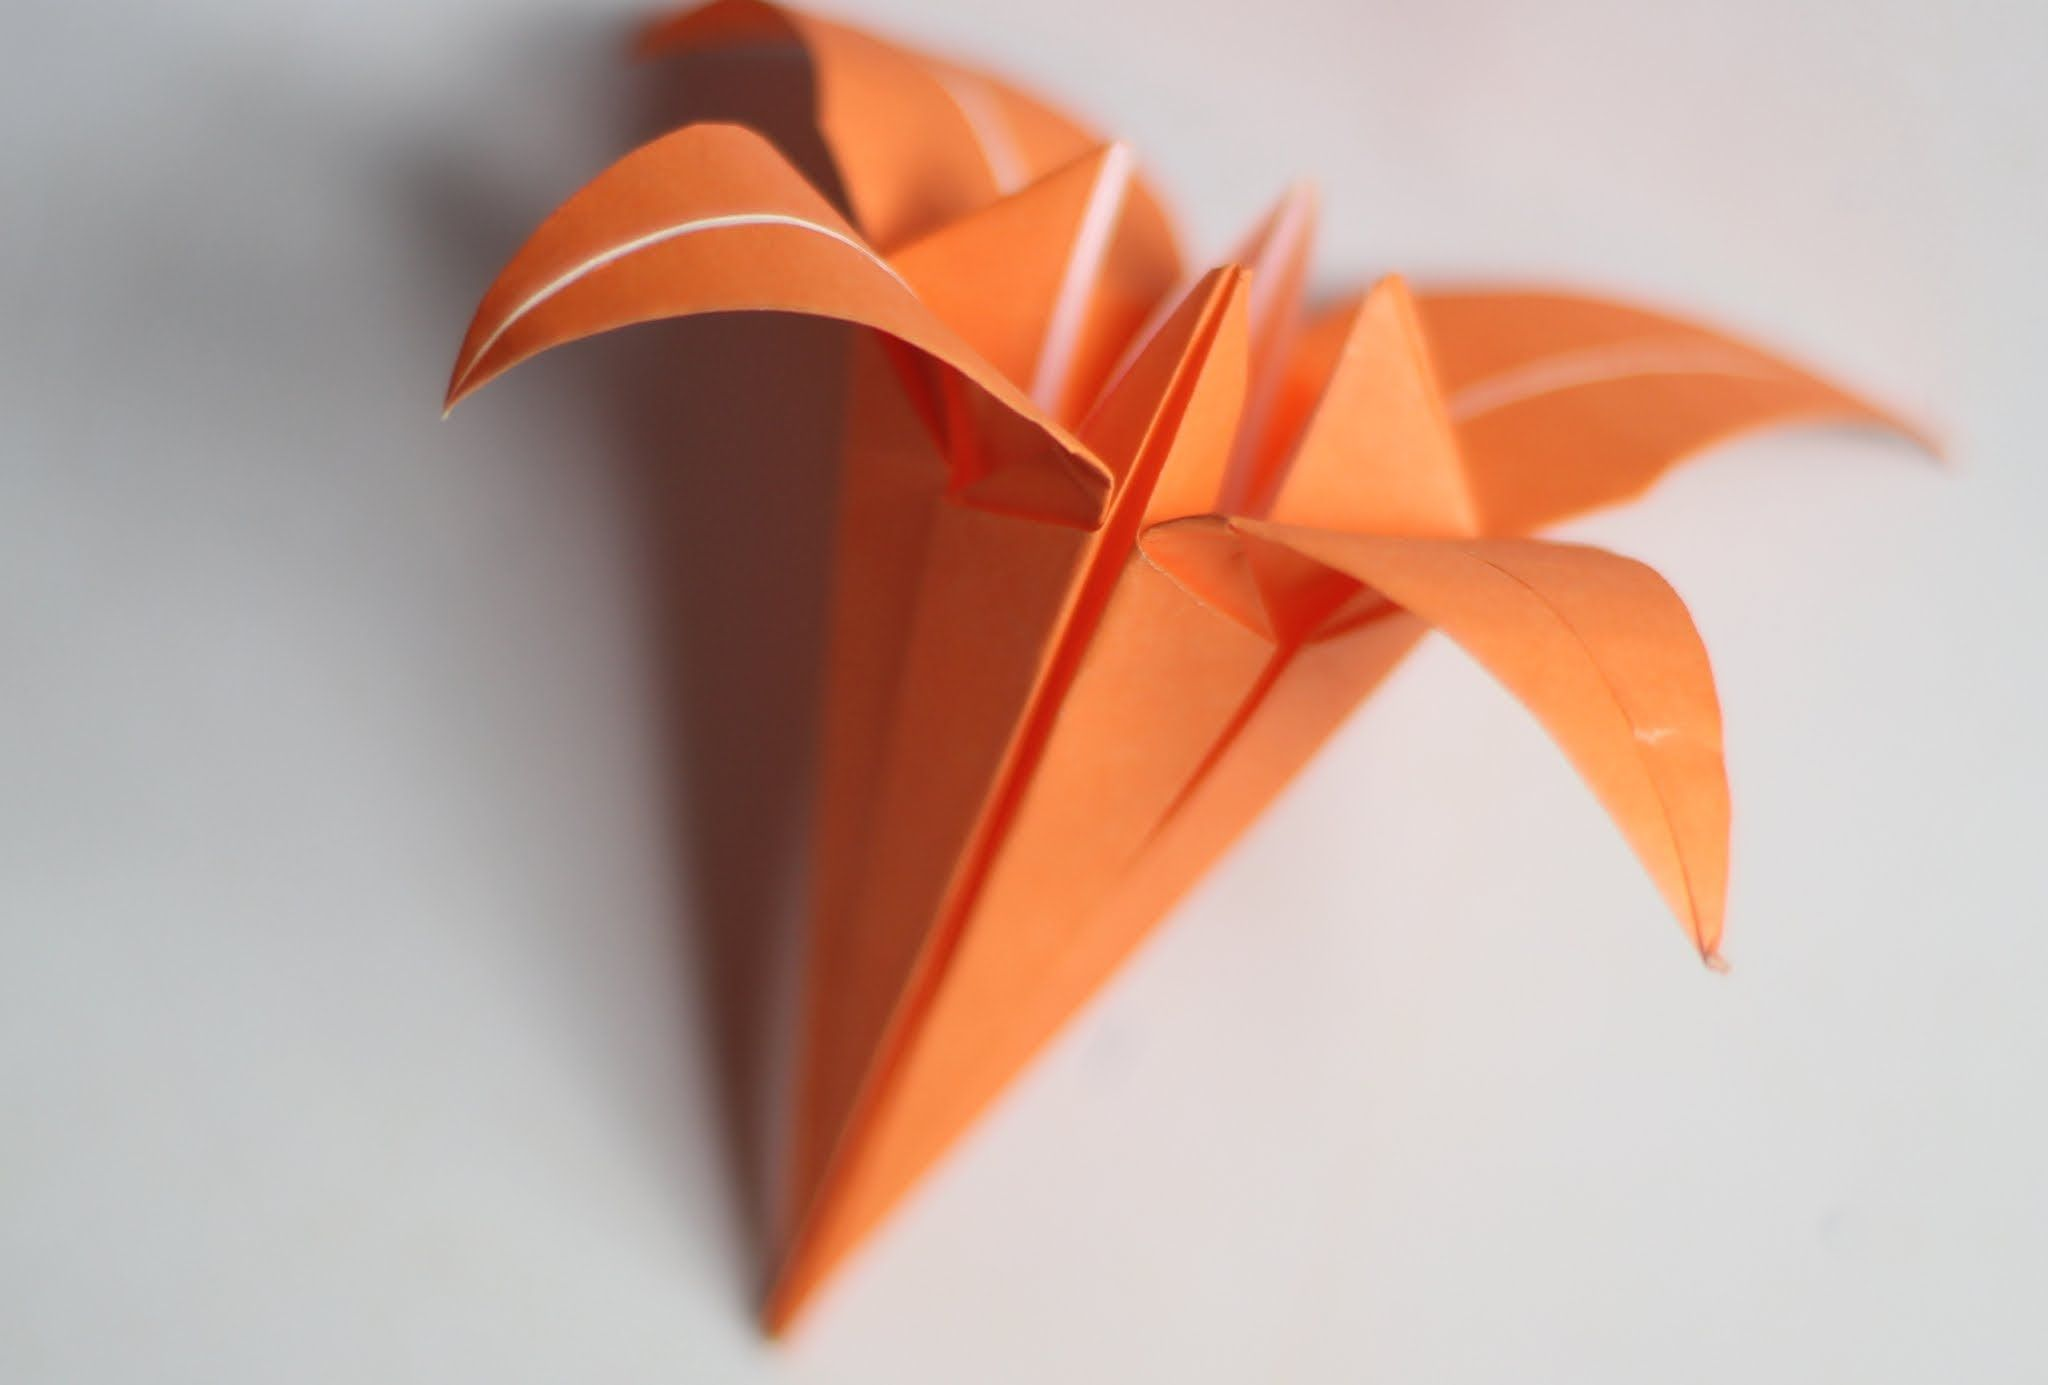 Hd Origami Lily Iris Flower Origami Instructions Origami Lily Origami Flowers Origami Instructions